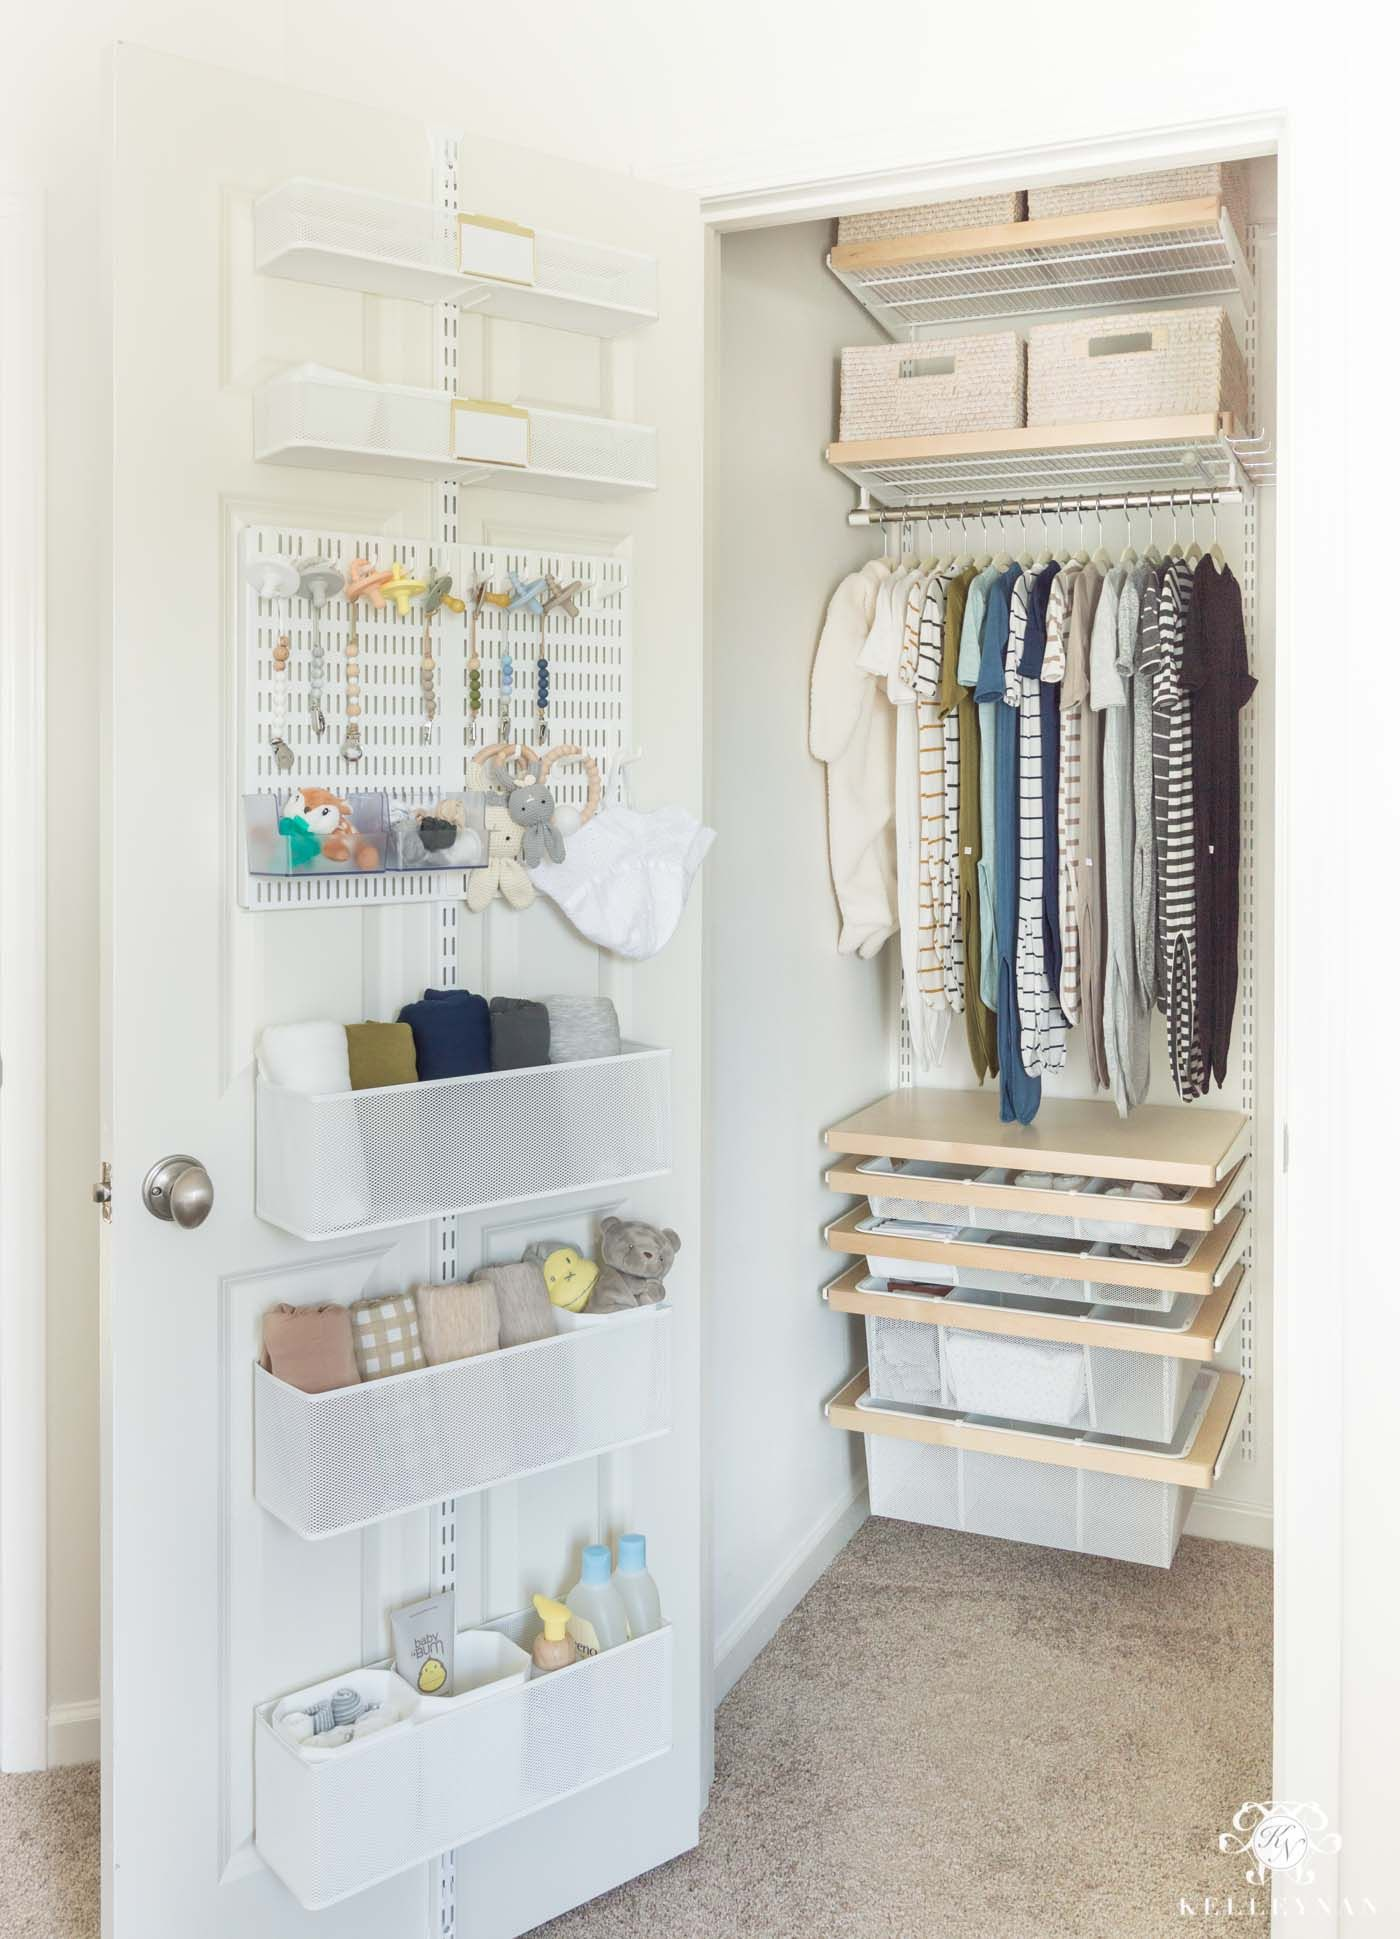 The Nursery Closet: Planned and Organized to the Max! | Kelley Nan